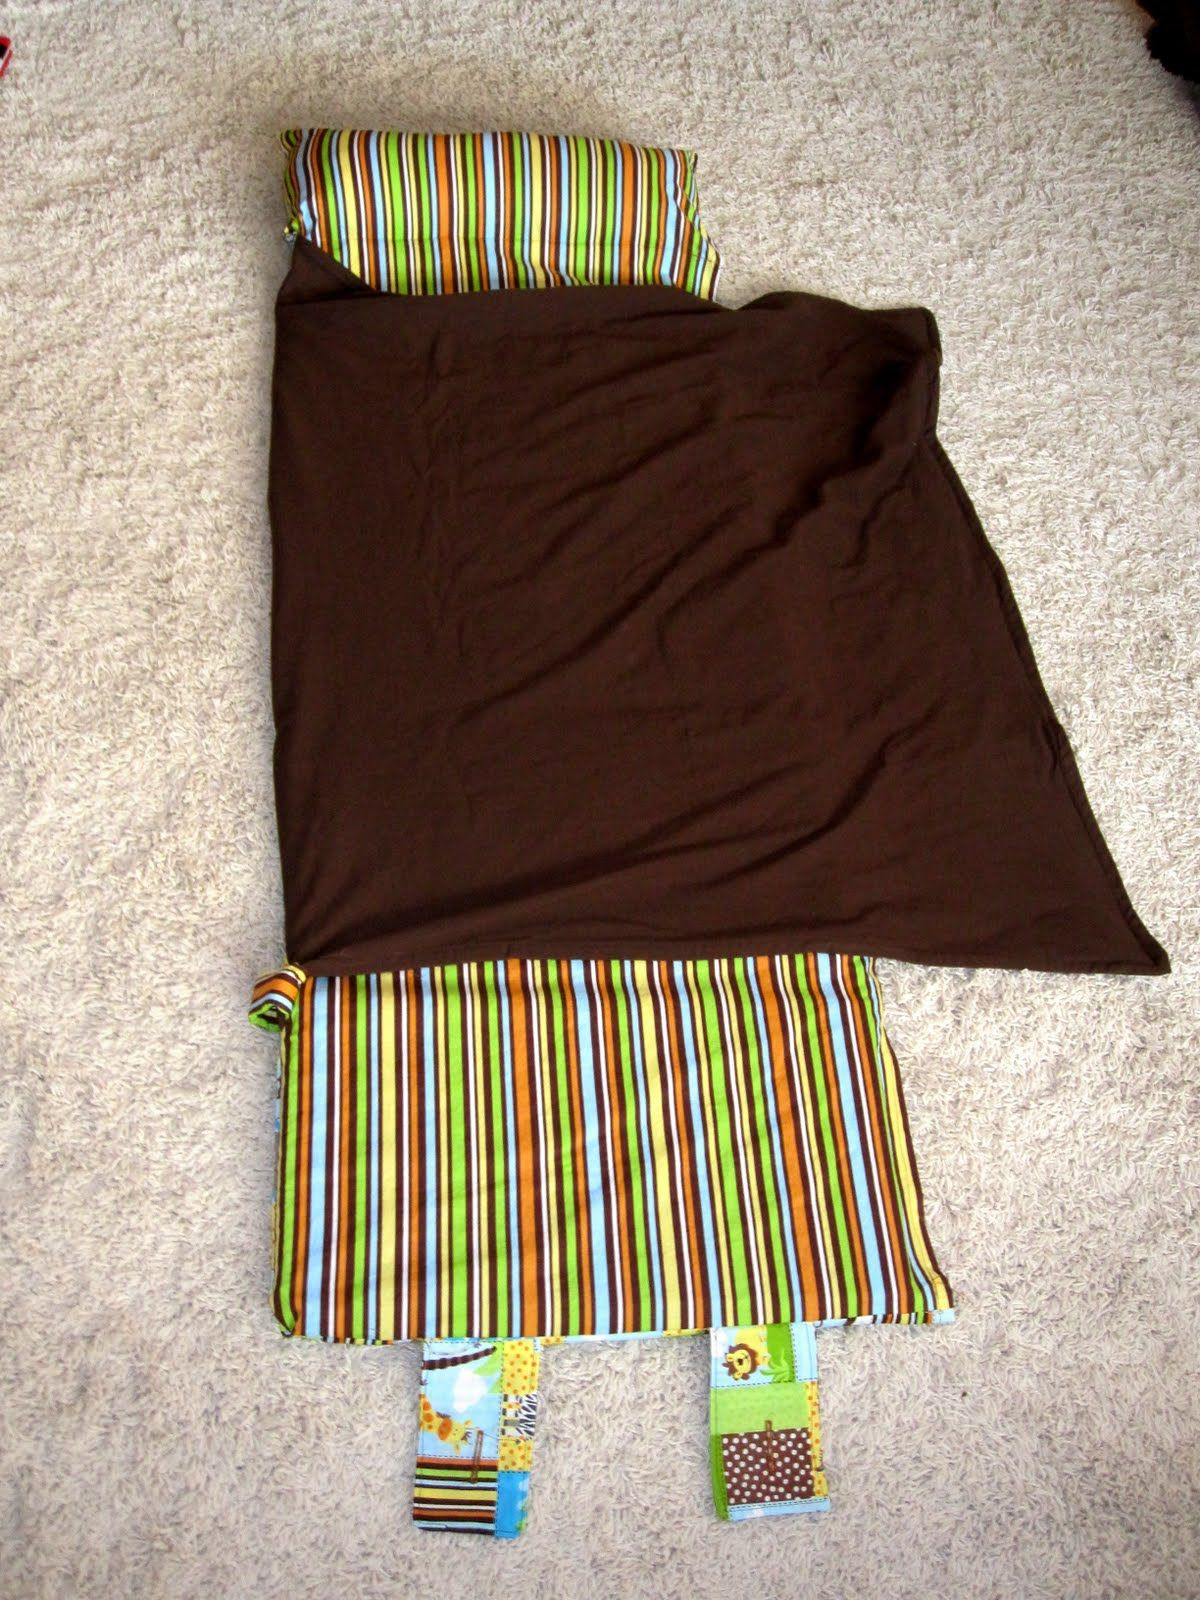 Nap Mat With Attached Blanket And Pillow Great Tutorial